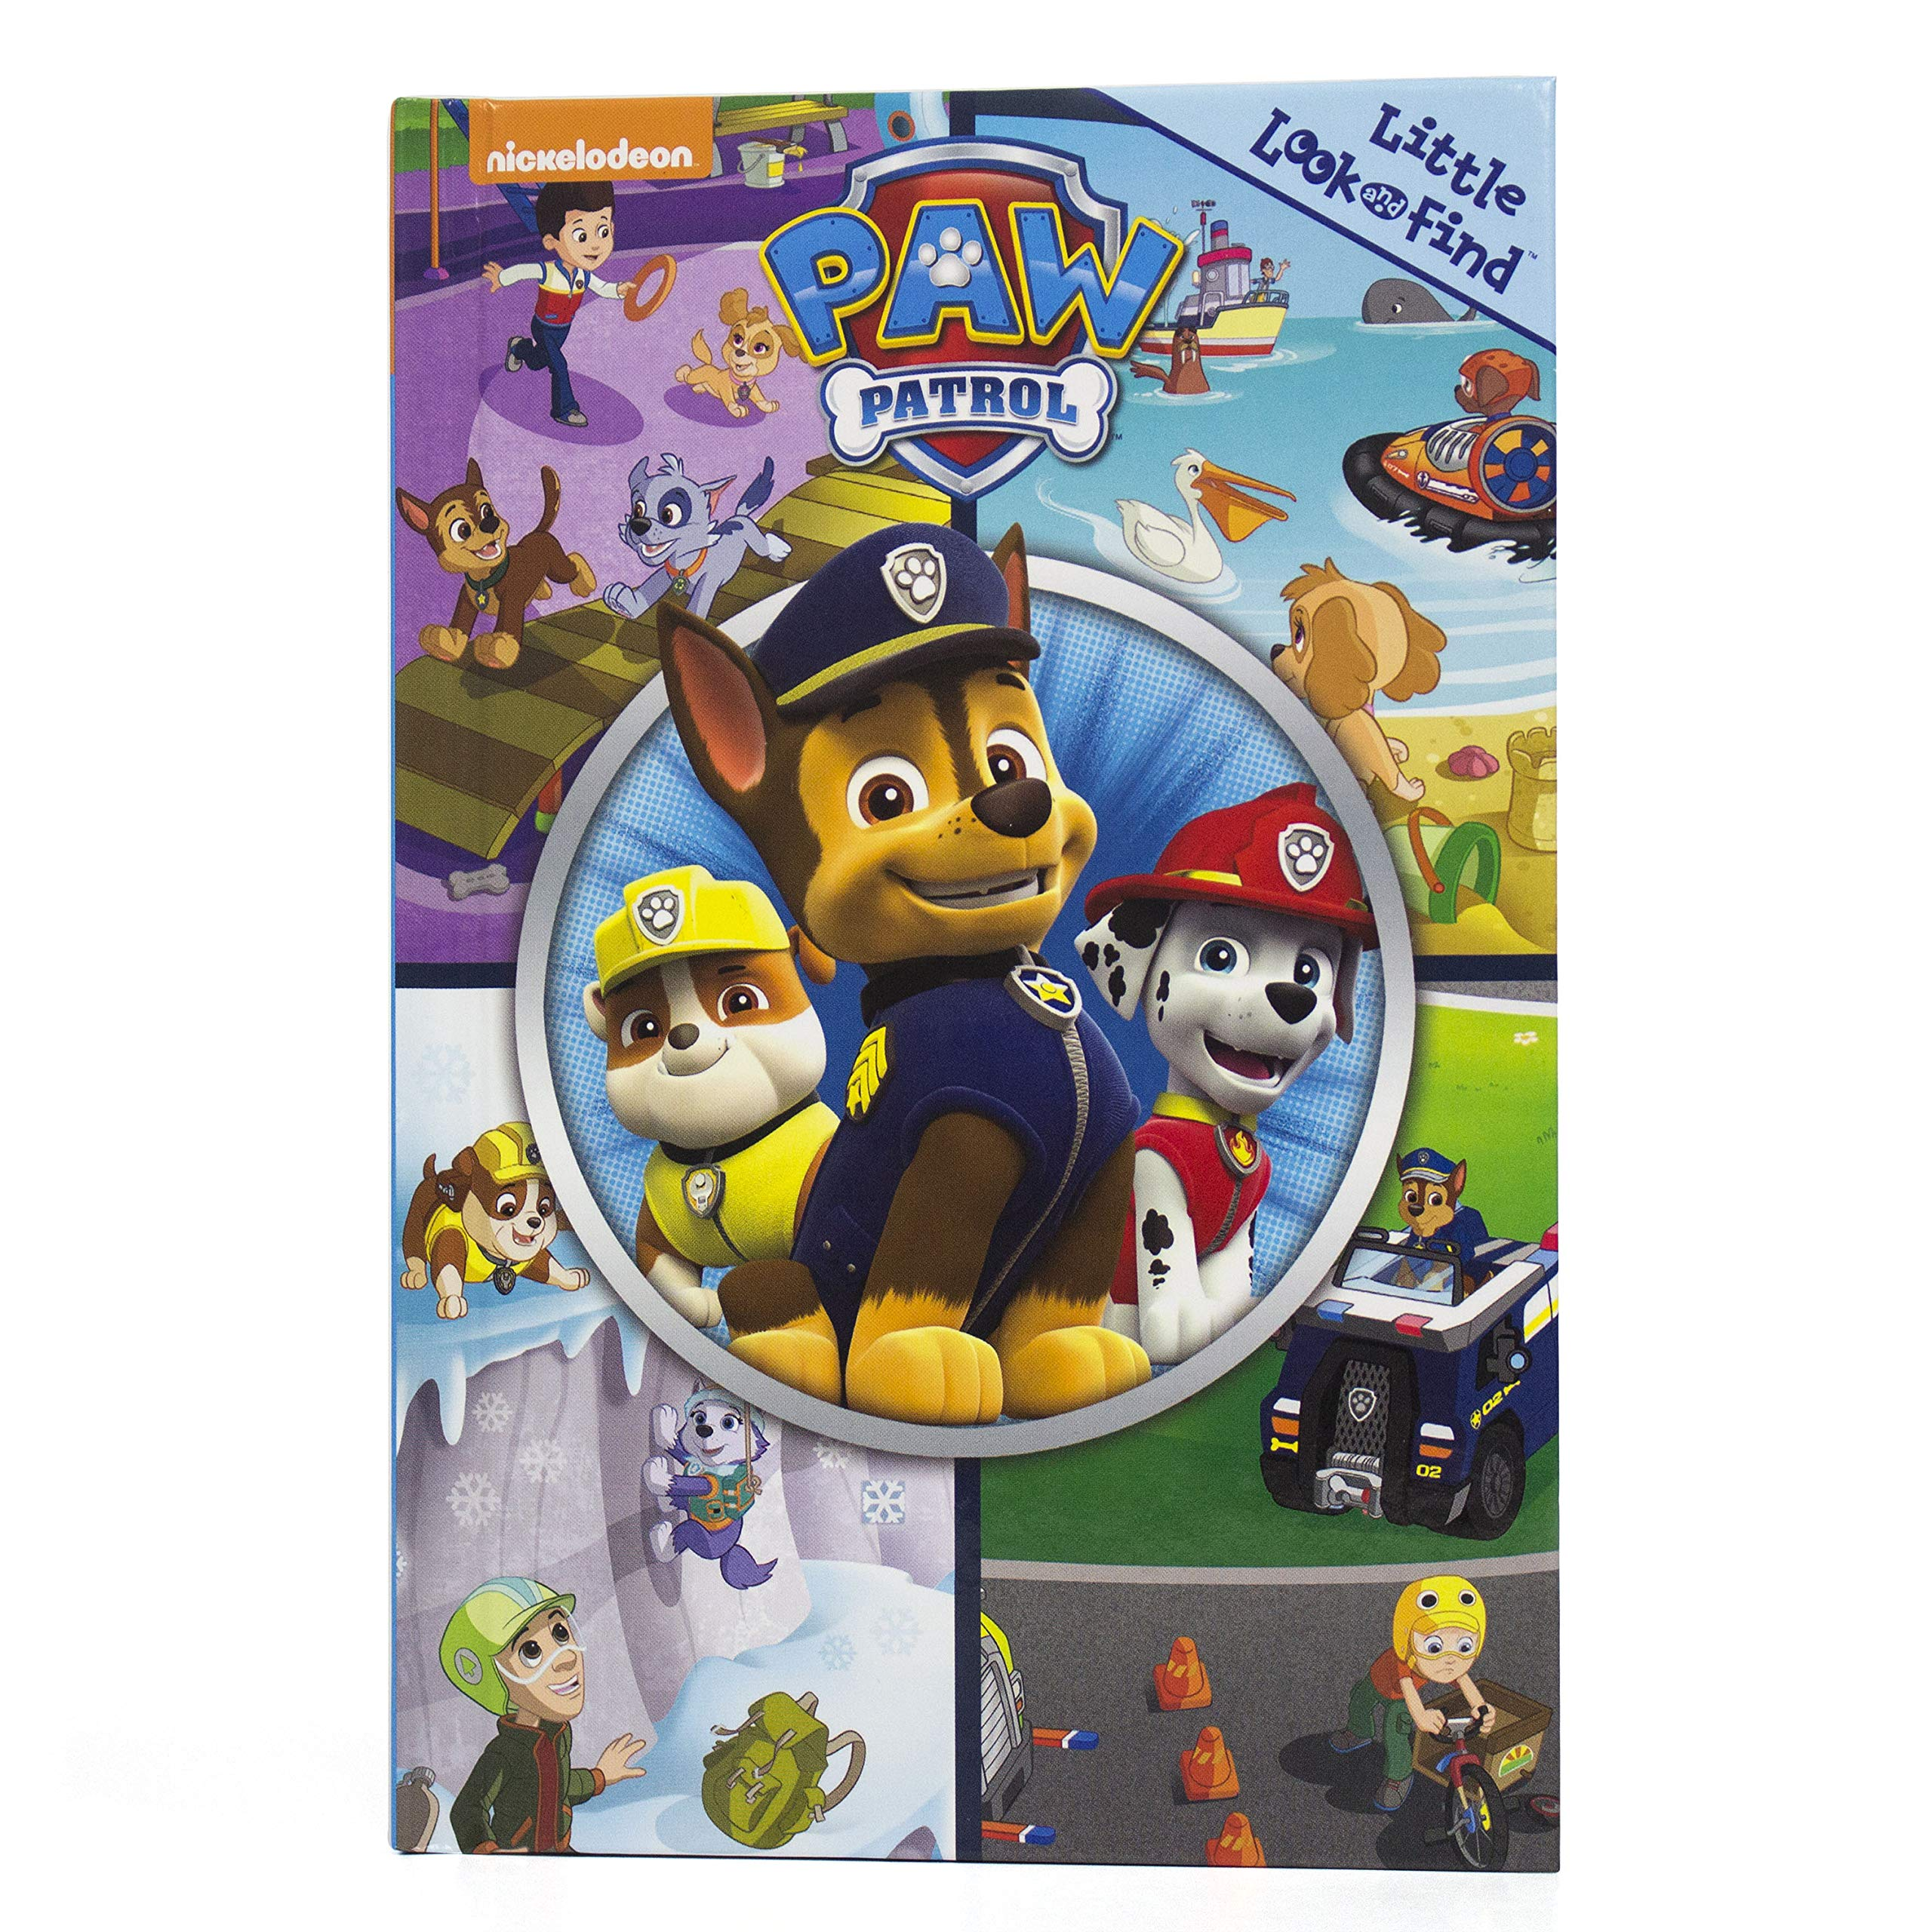 Nickelodeon Paw Patrol Little Look And Find Activity Book Pi Kids Phoenix International Publications Editors Of Phoenix International Publications Fabrizio Petrossi Fabrizio Petrossi 9781503702936 Amazon Com Books